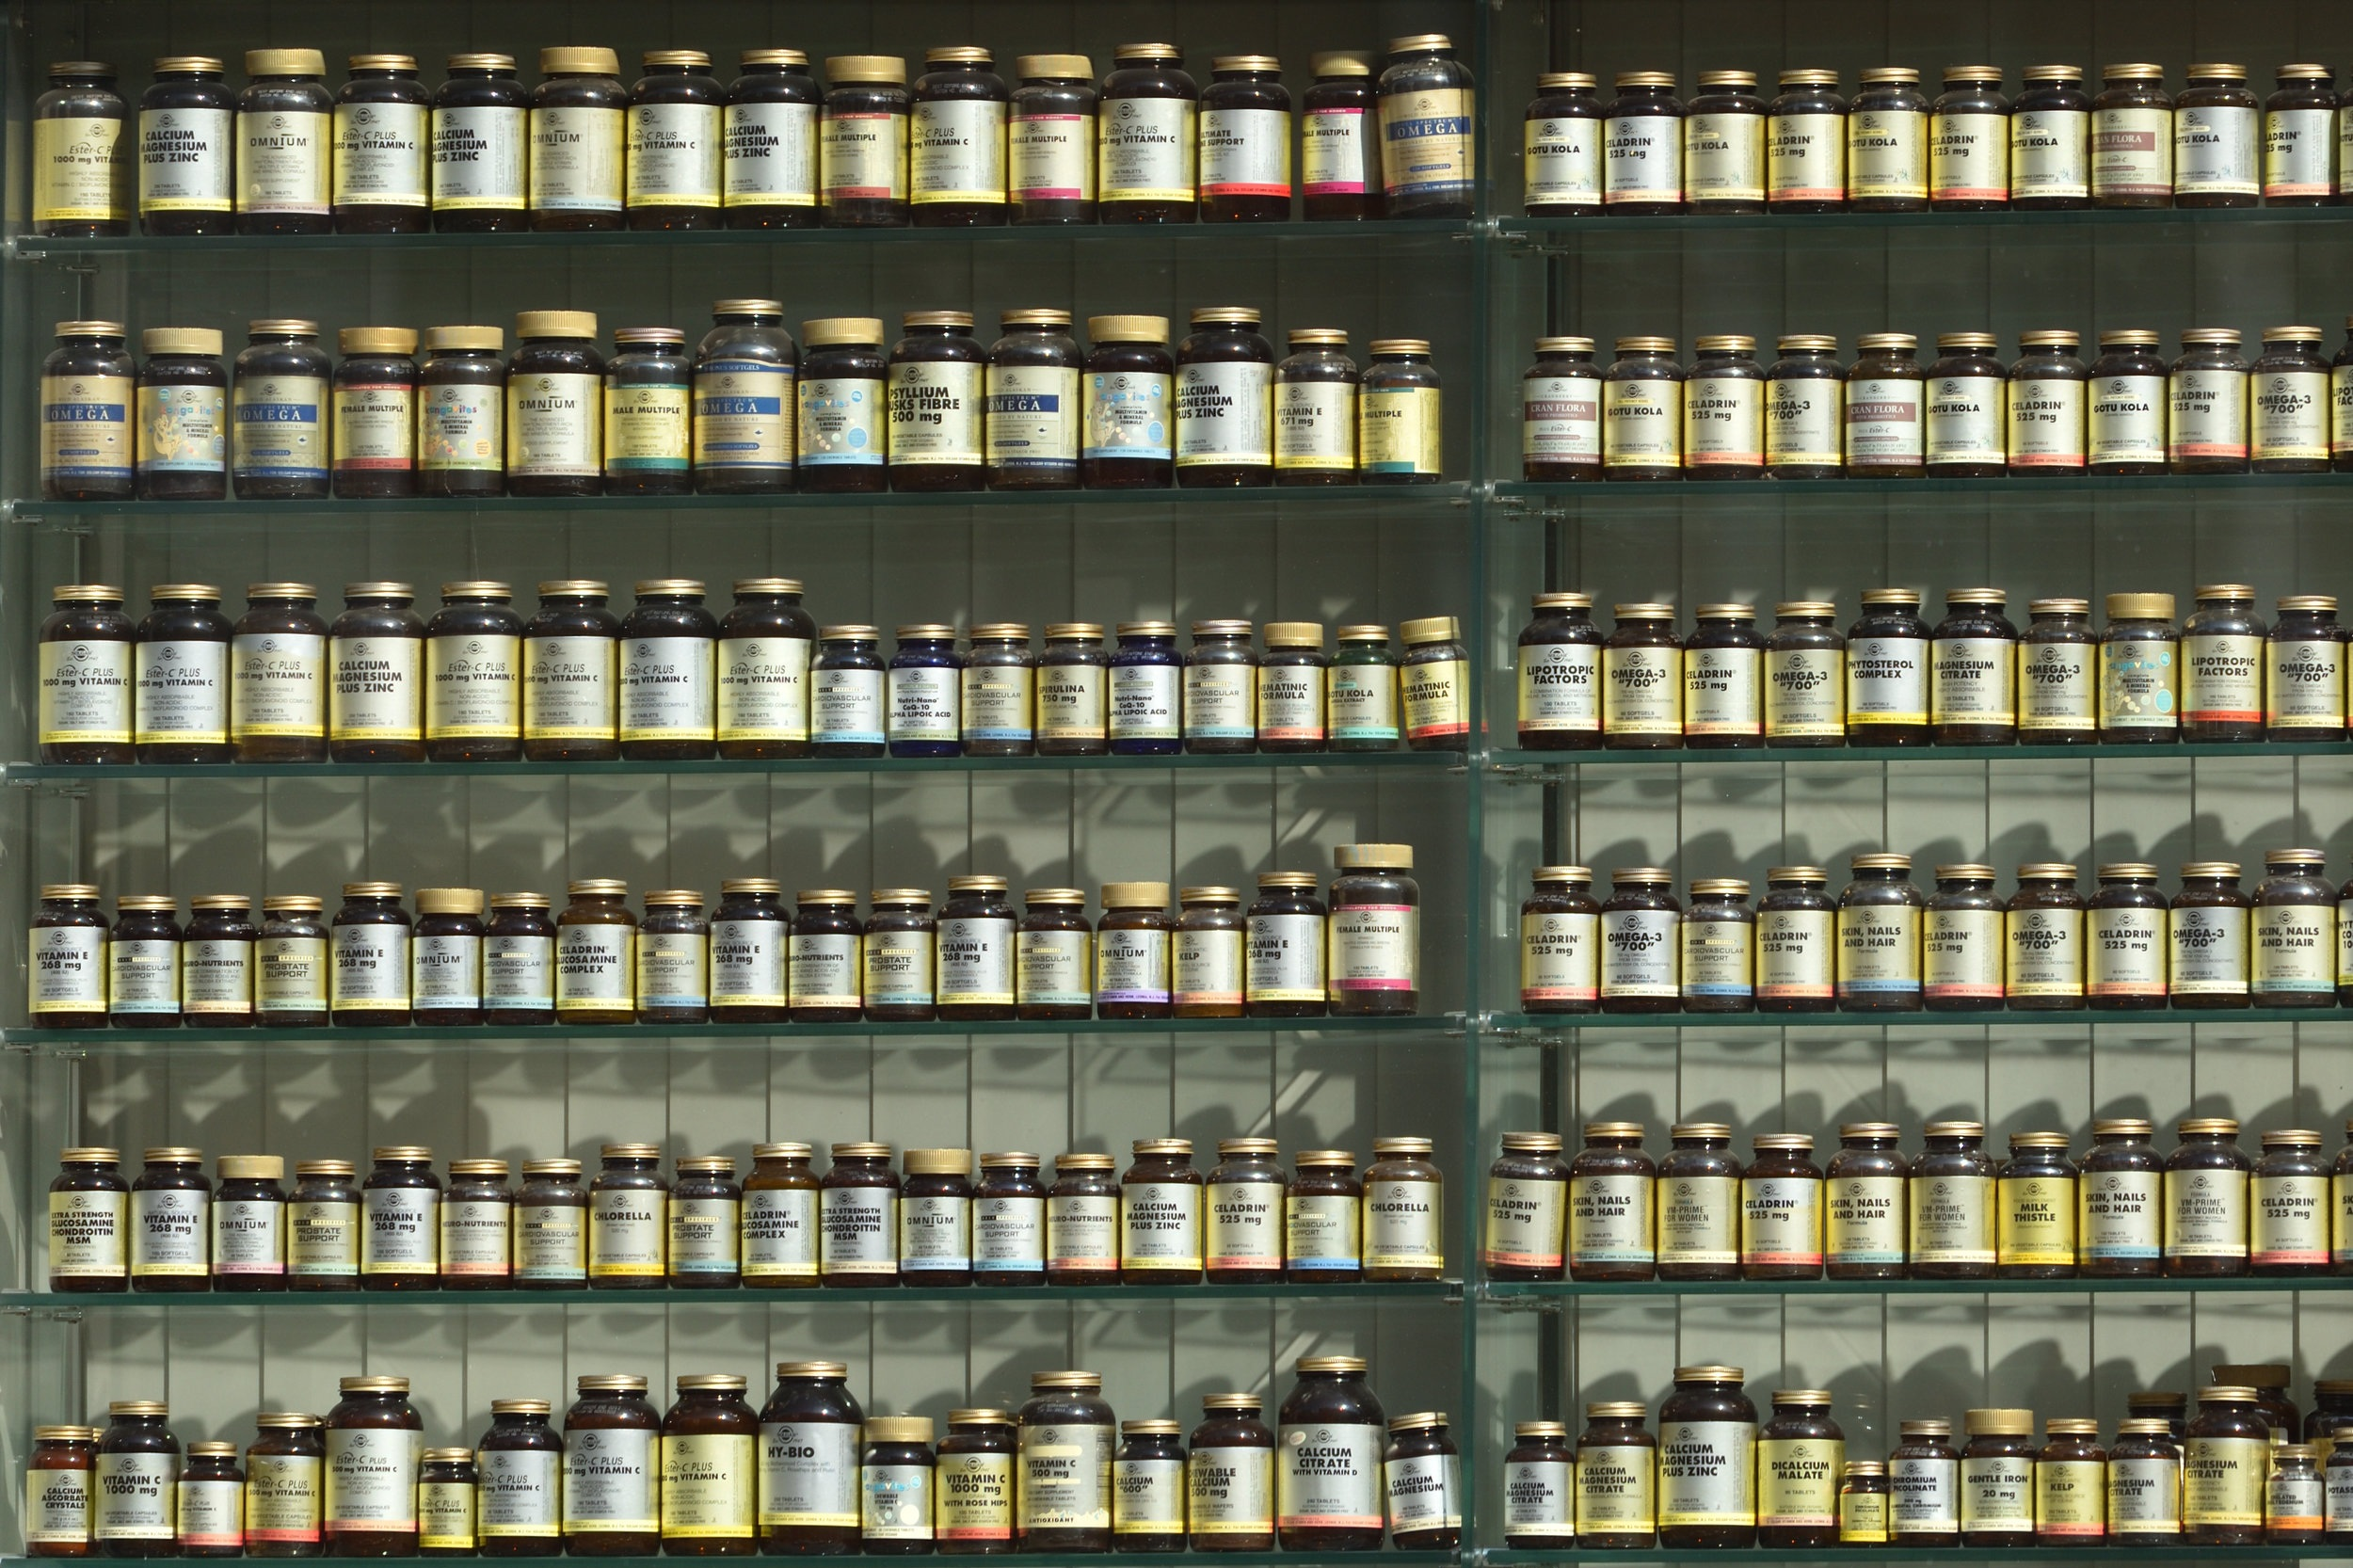 Herbal Supplement Sales in US Increase 8.5% in 2017, Topping $8 Billion - Strongest sales growth in more than 15 years bolstered by continued popularity of Ayurvedic herbs and new formulations of botanicals with general health and nutrition benefits.